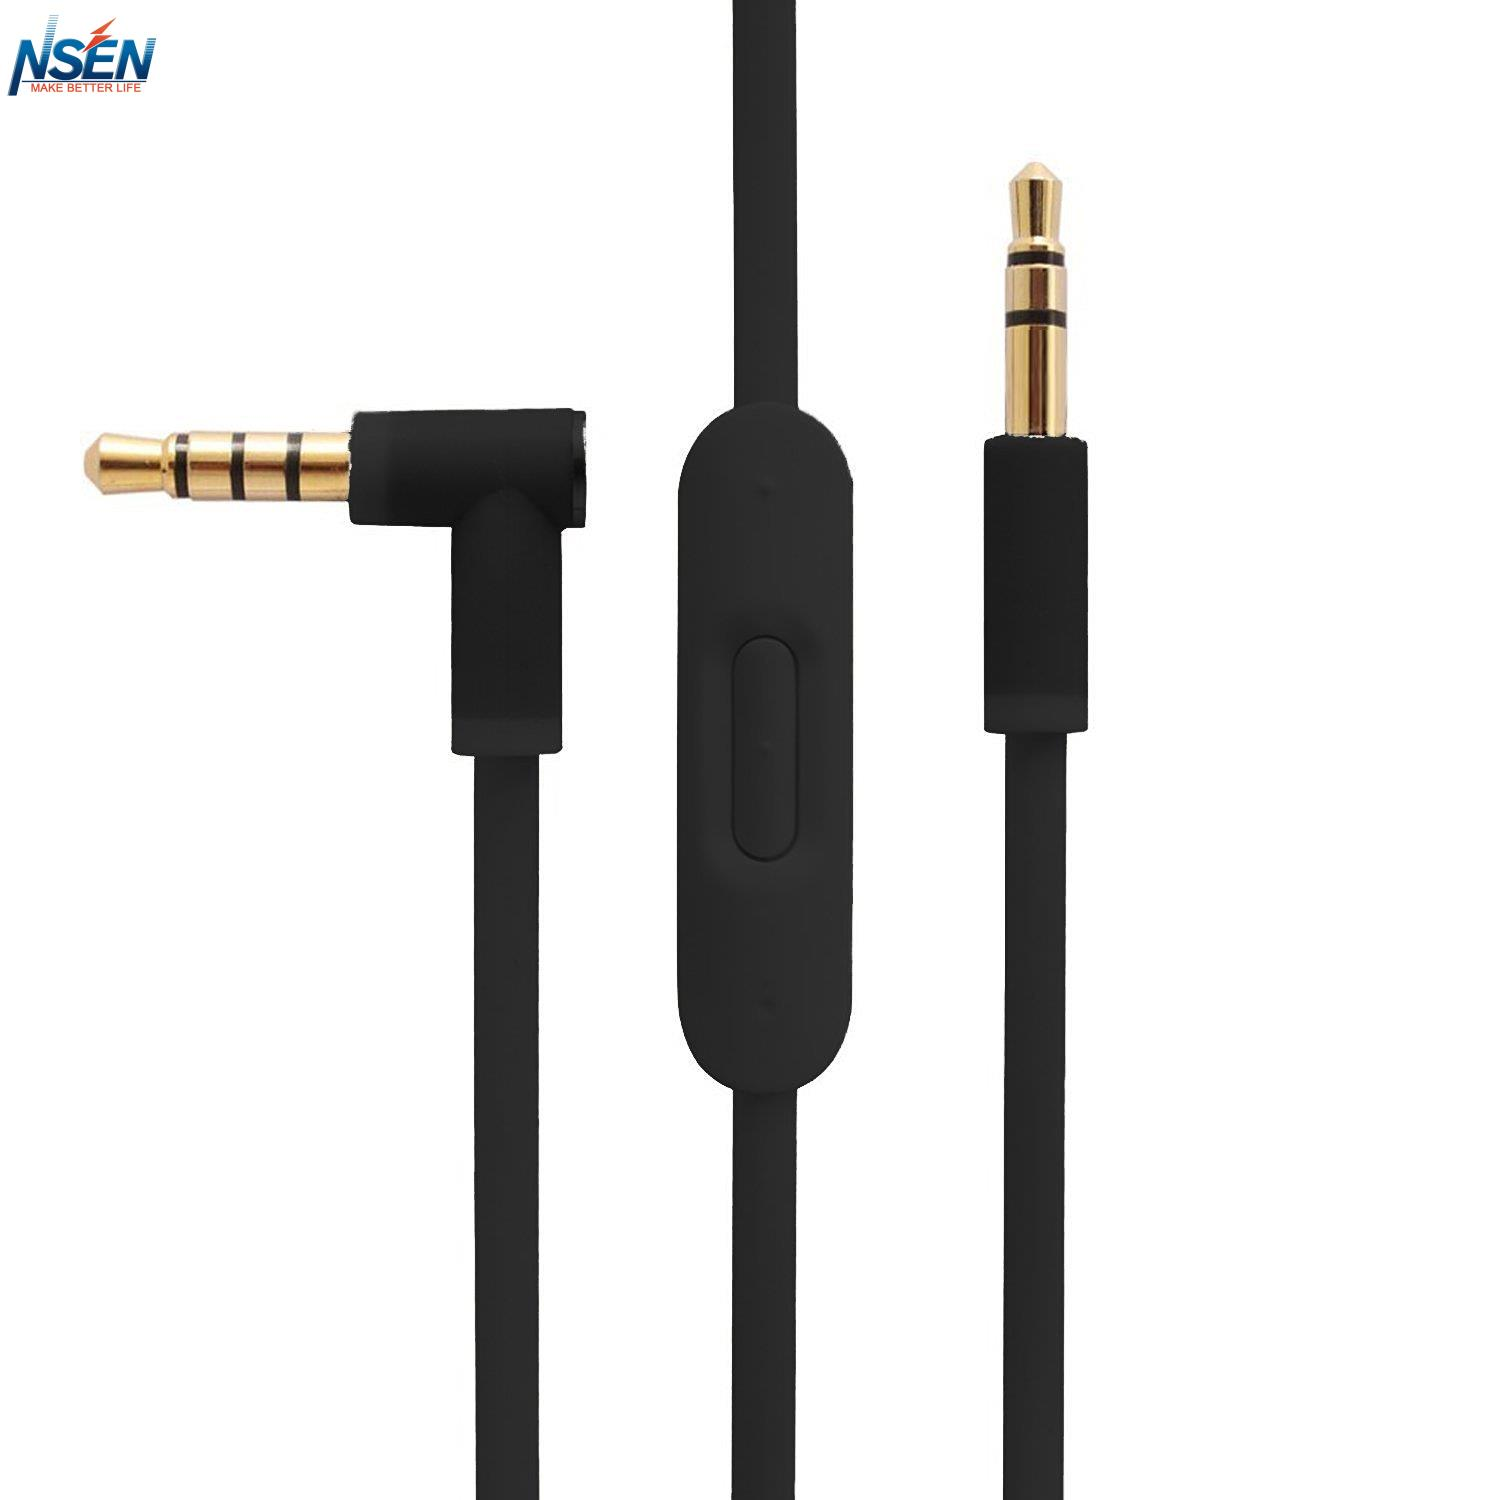 Replacement Audio Cable with Inline Remote Microphone for Beats SoloHD Studio Pro Detox Wireless Studio 2.0 Solo Headphones